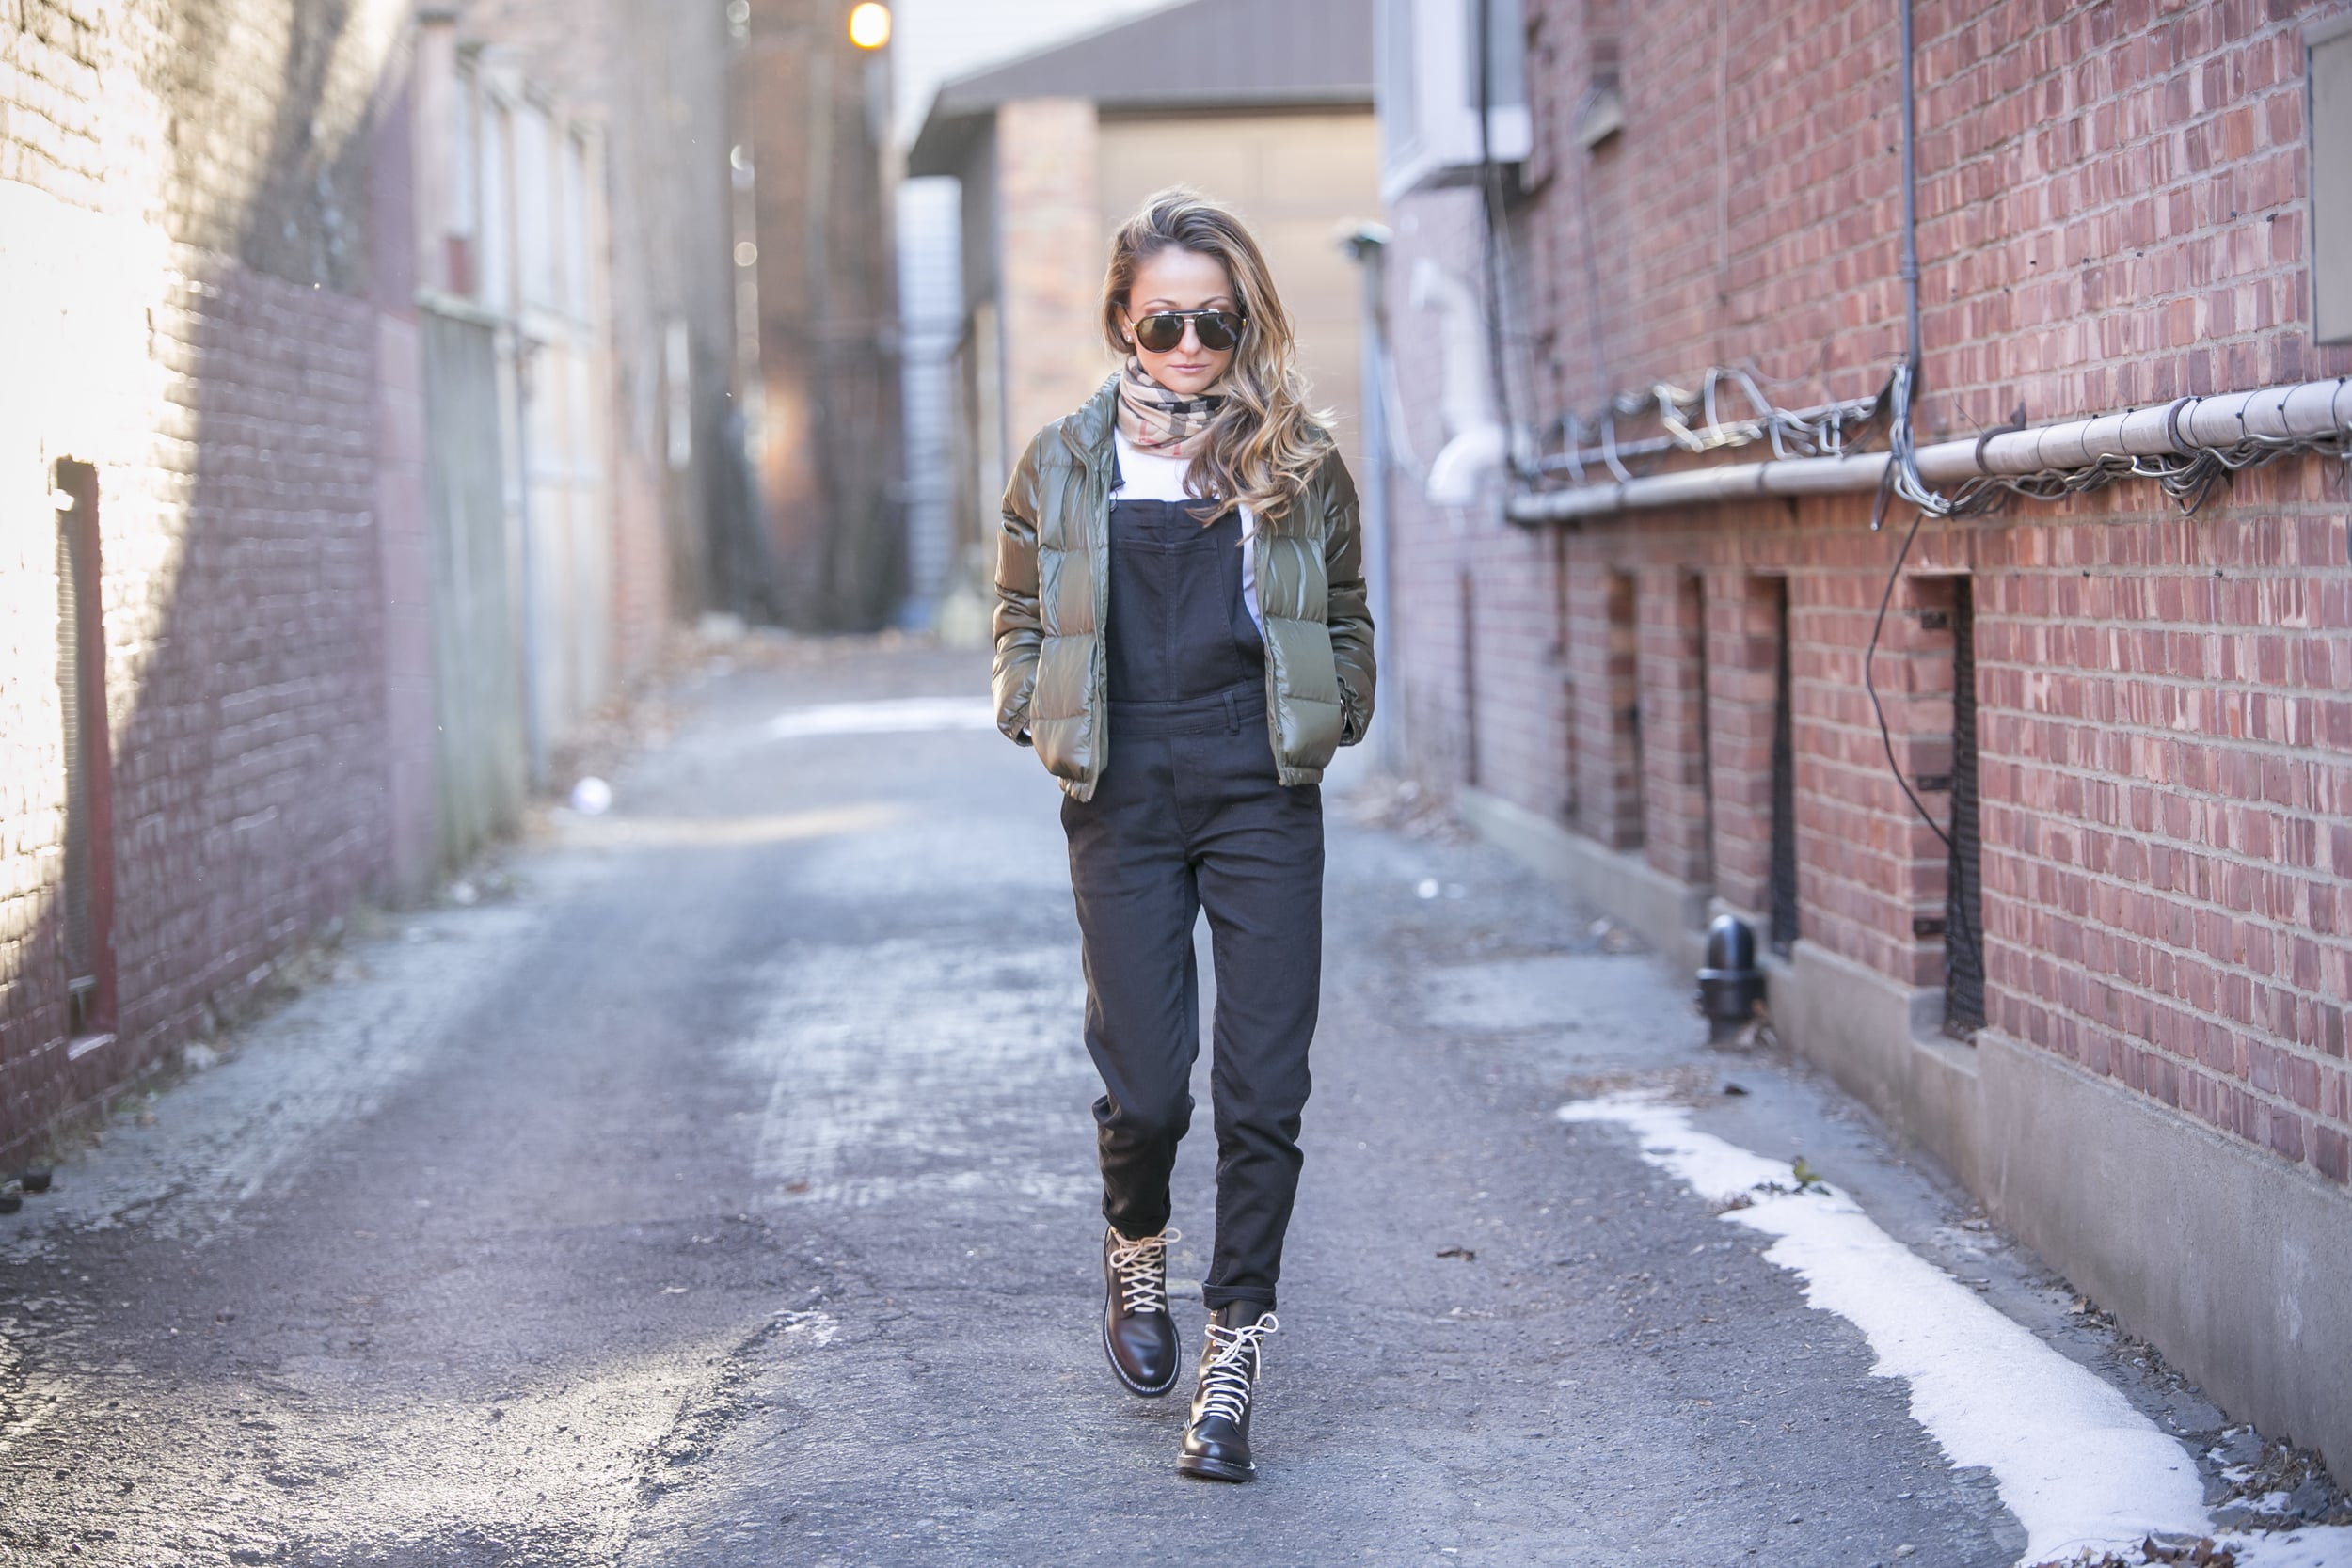 Overalls:H&M ( similar here )| Jacket:J.Crew (older)|Boots: Rag&Bone |Scarf: Burberry     Dino Petrocelli Photography